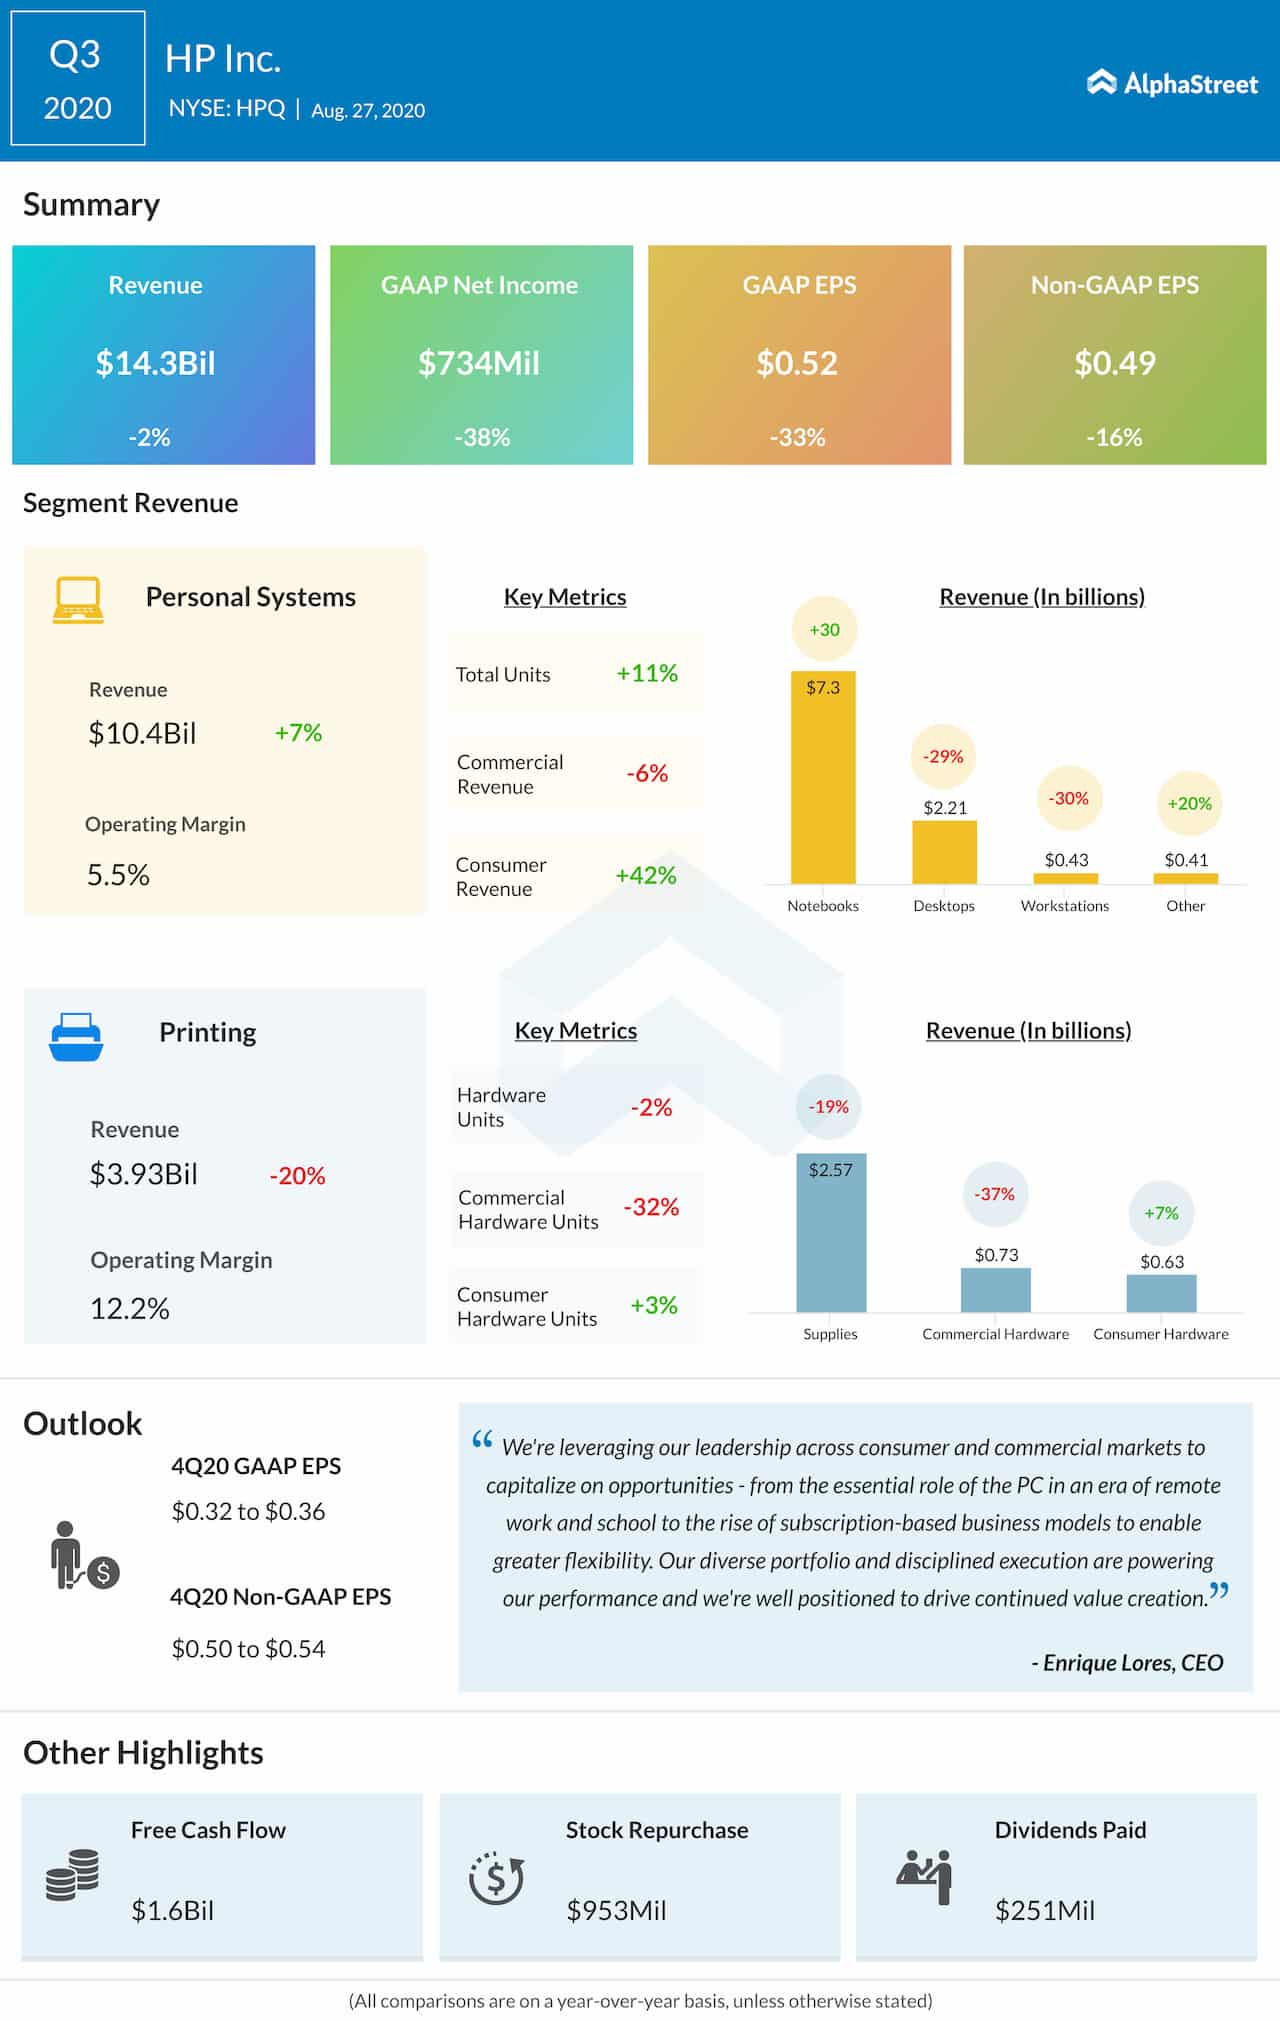 HP Inc. Q3 2020 Earnings Infographic